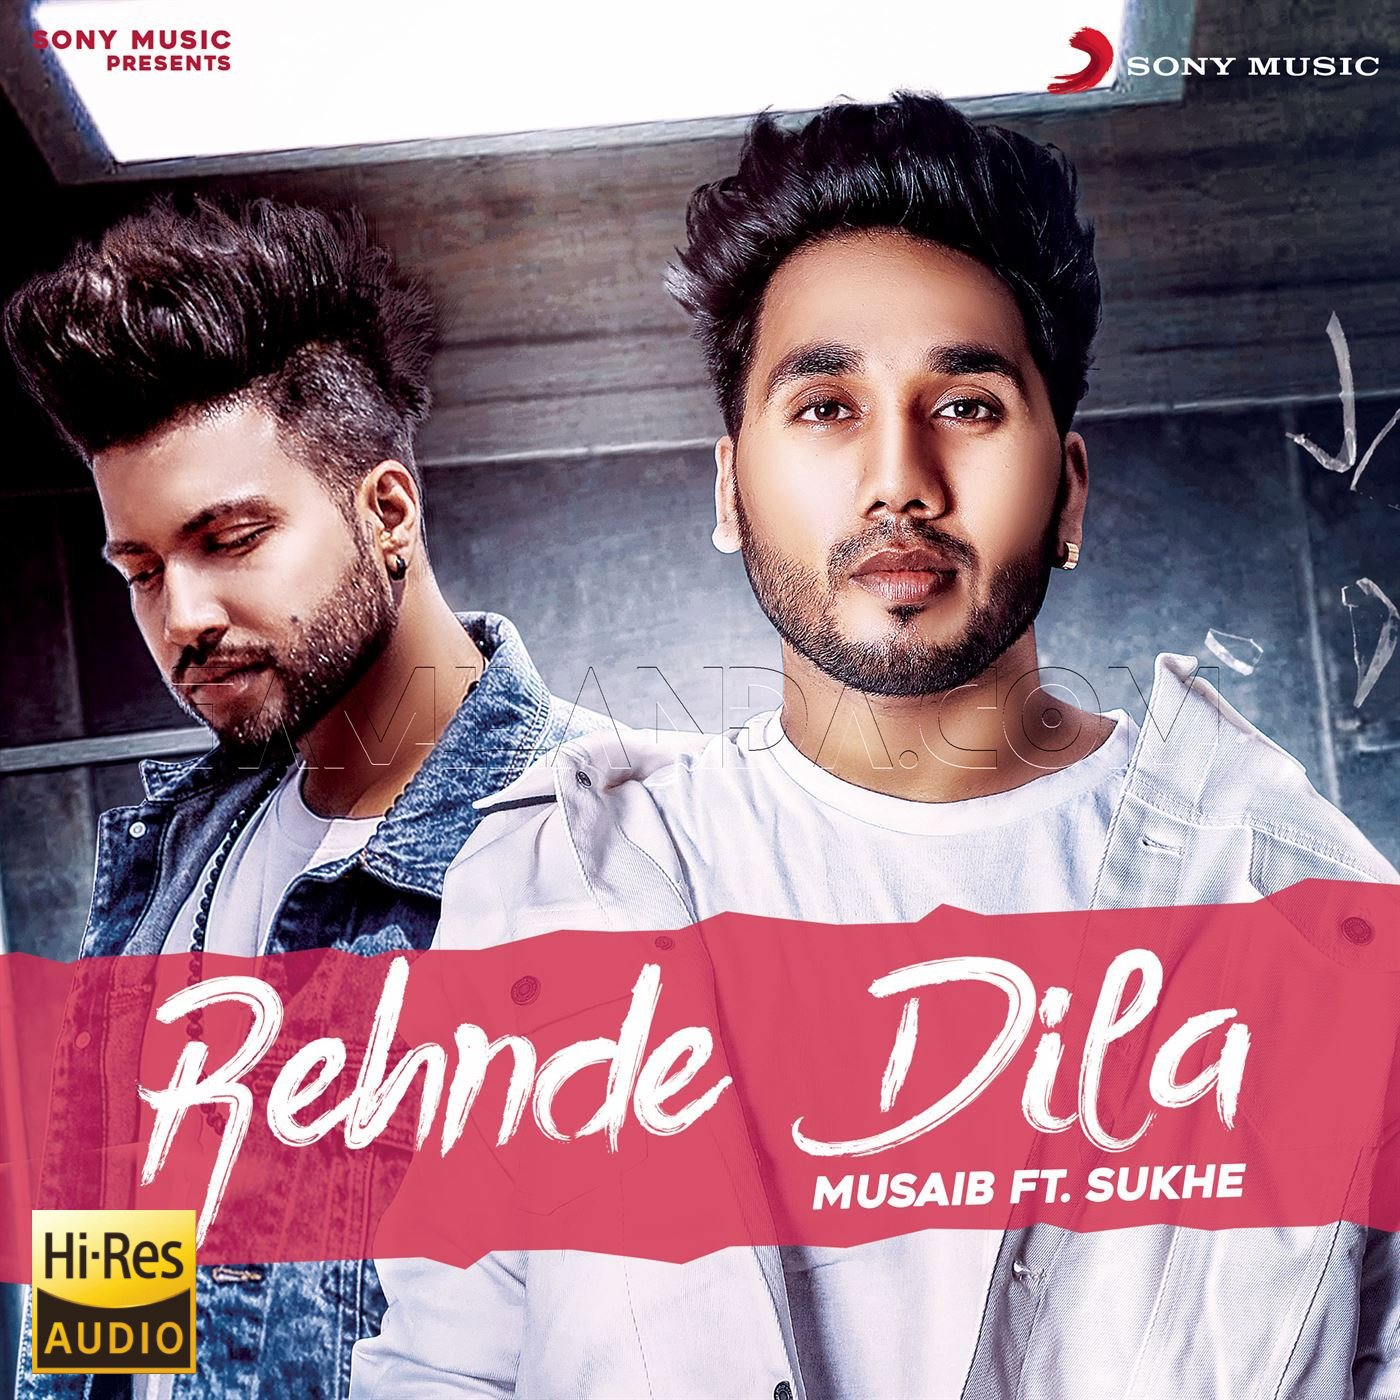 Rehnde Dila (feat. Sukhe) – Single 24 BIT 44 KHZ FLAC Song